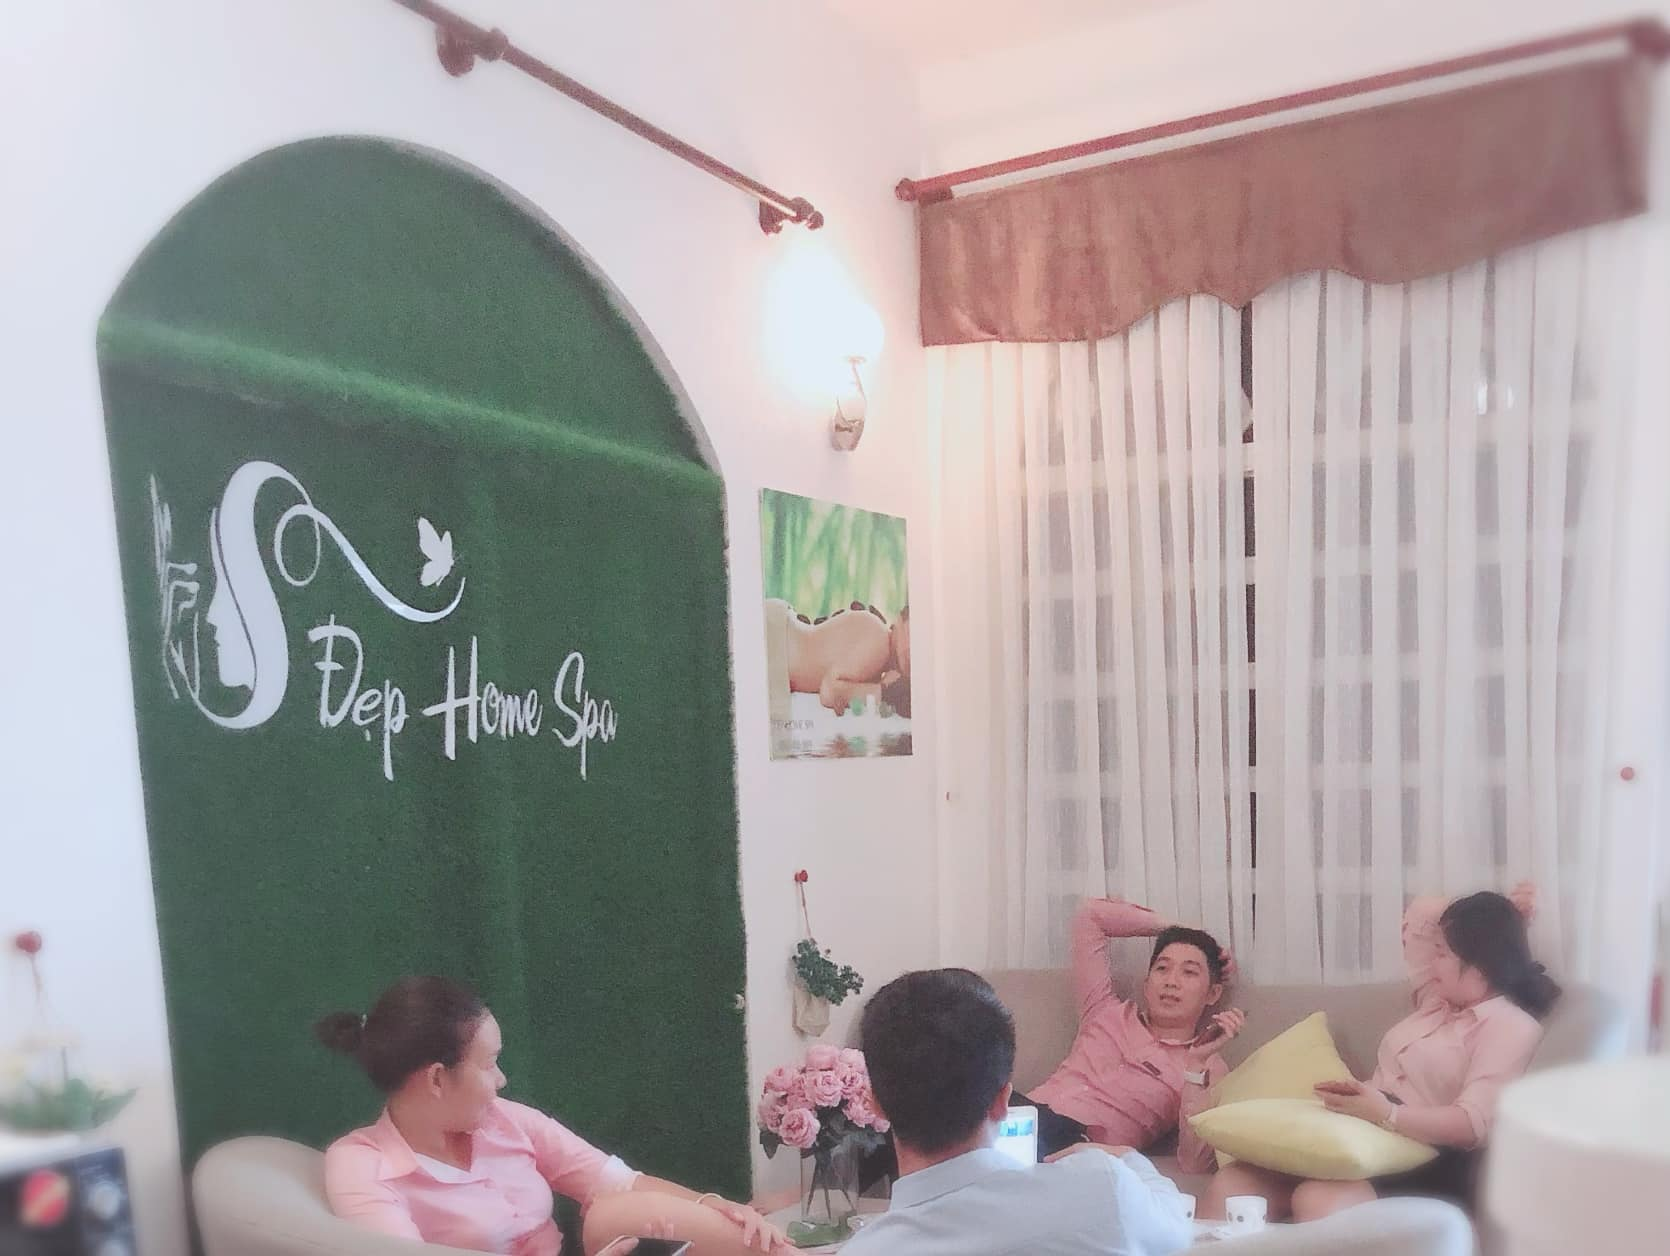 Đẹp home spa